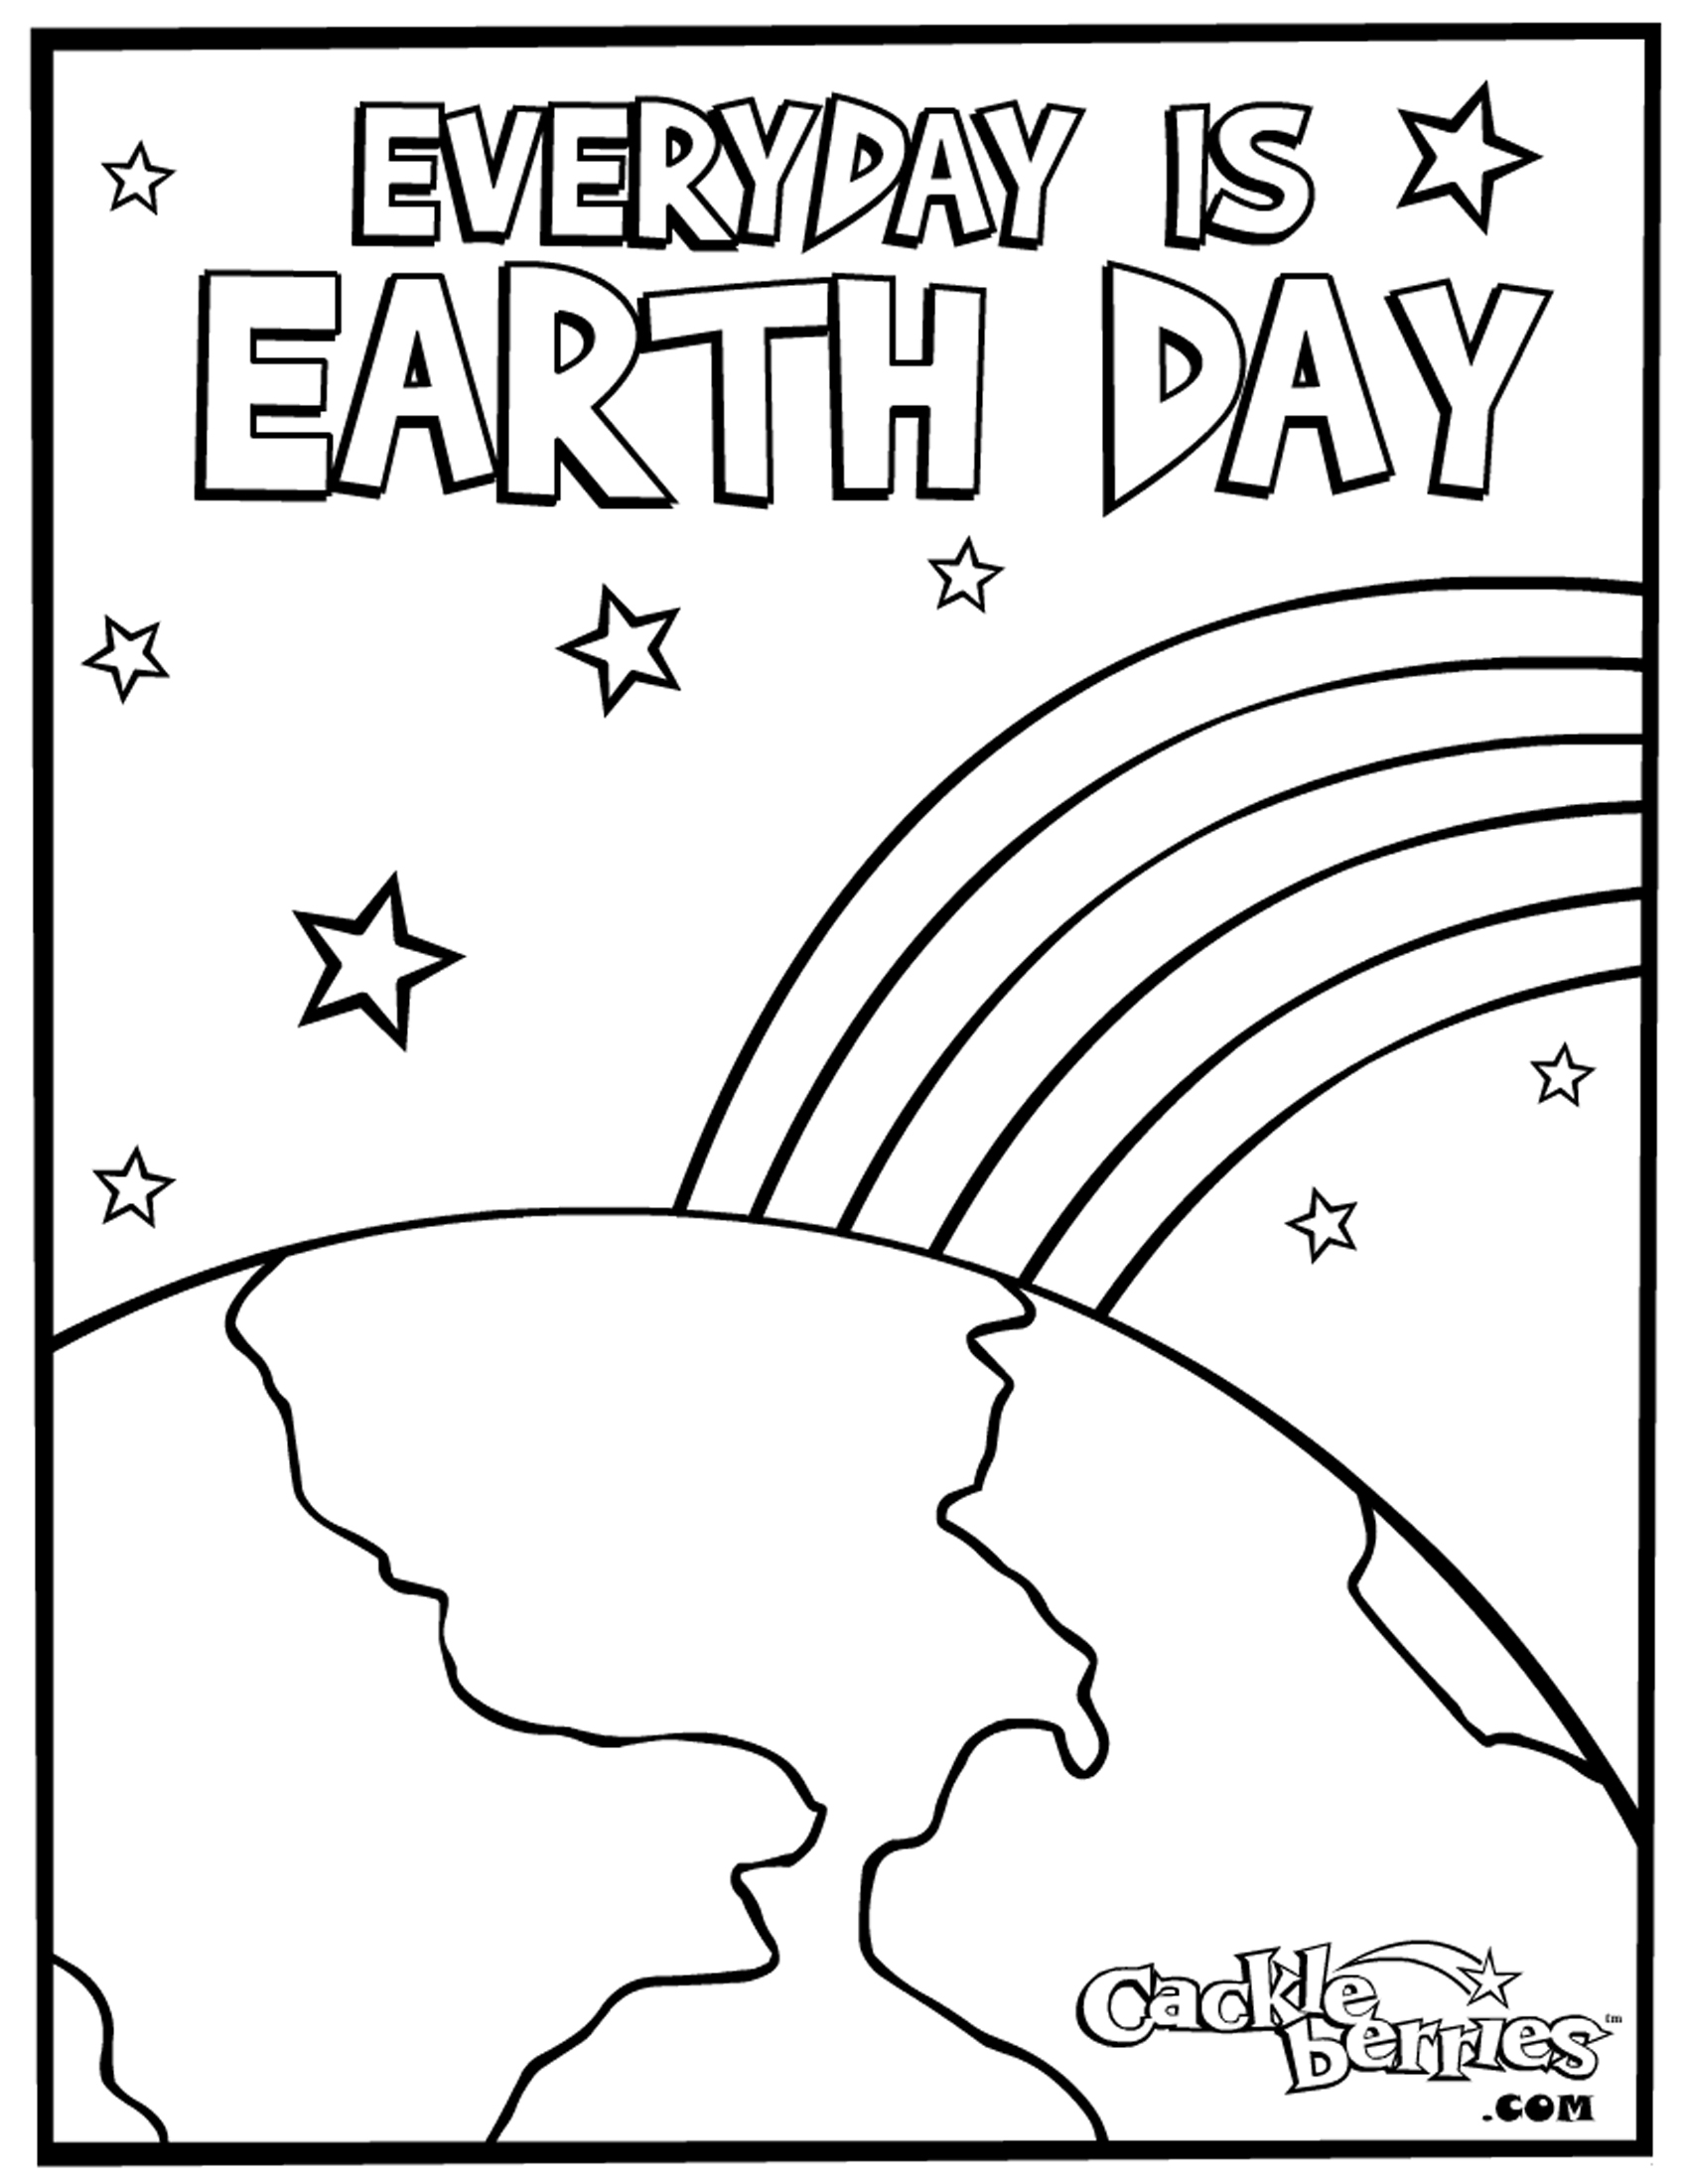 coloring pictures of earth printable earth coloring pages for kids cool2bkids pictures coloring earth of